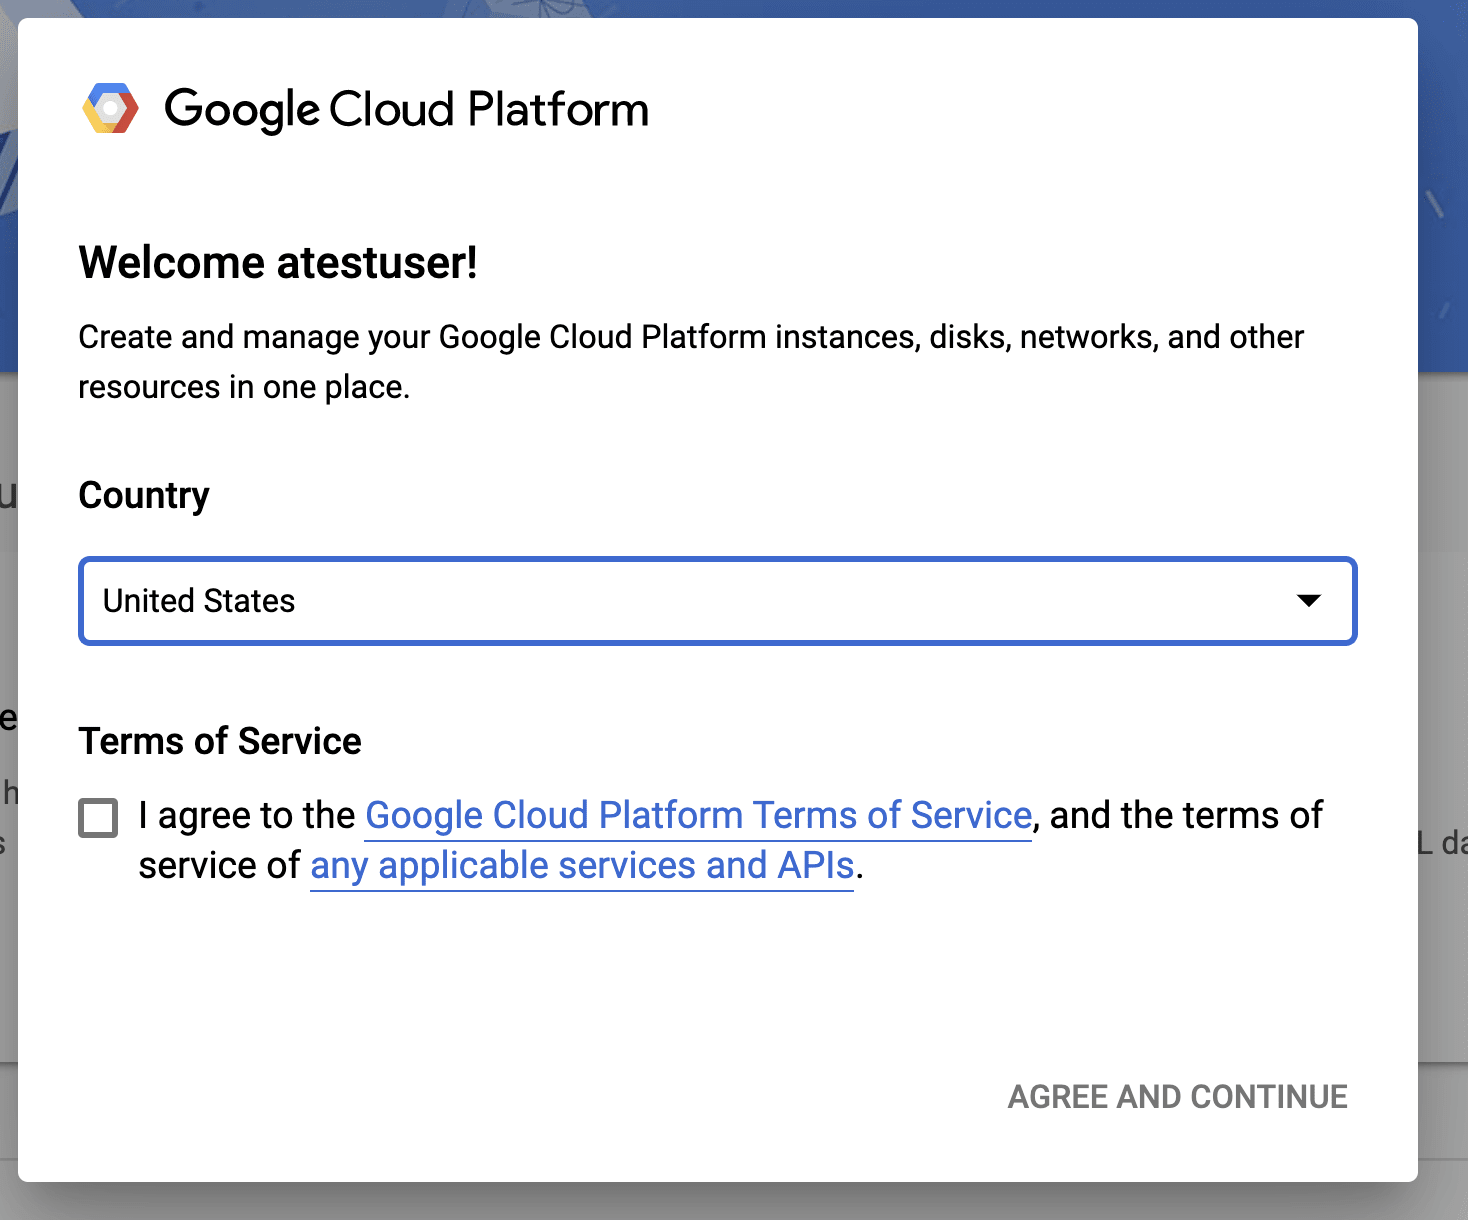 New Users GCP Agreement